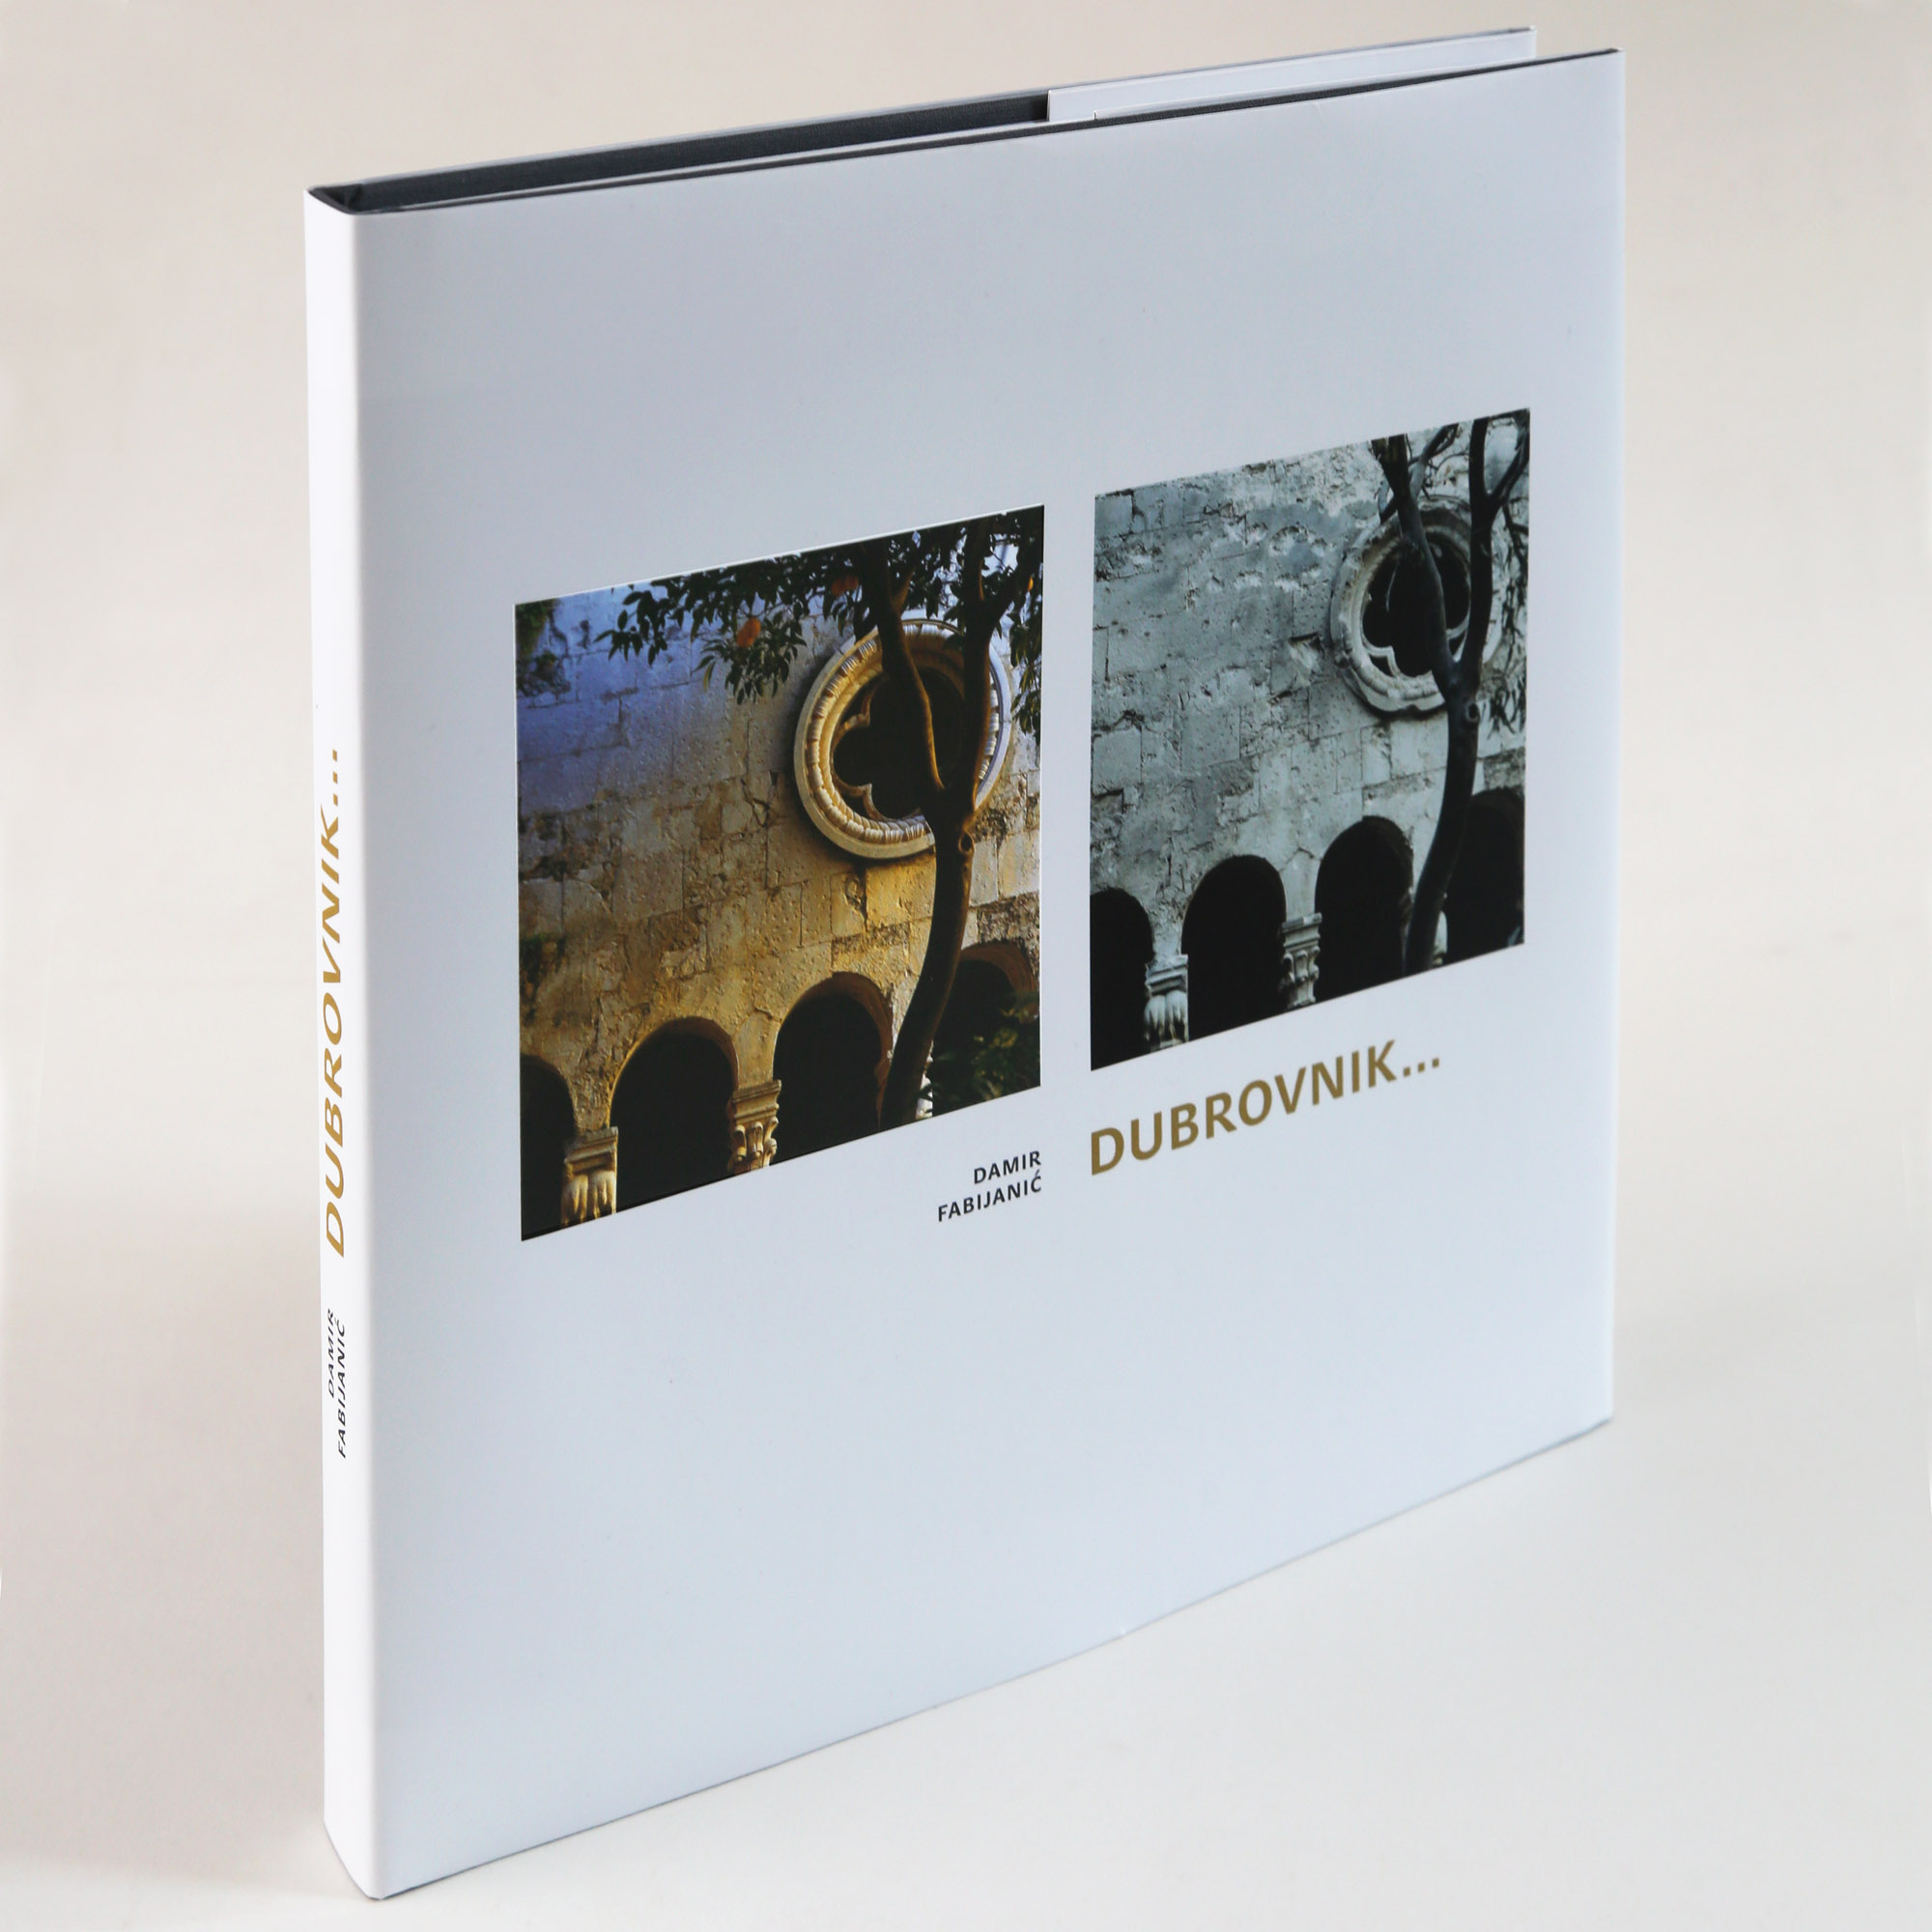 A new edition of the book